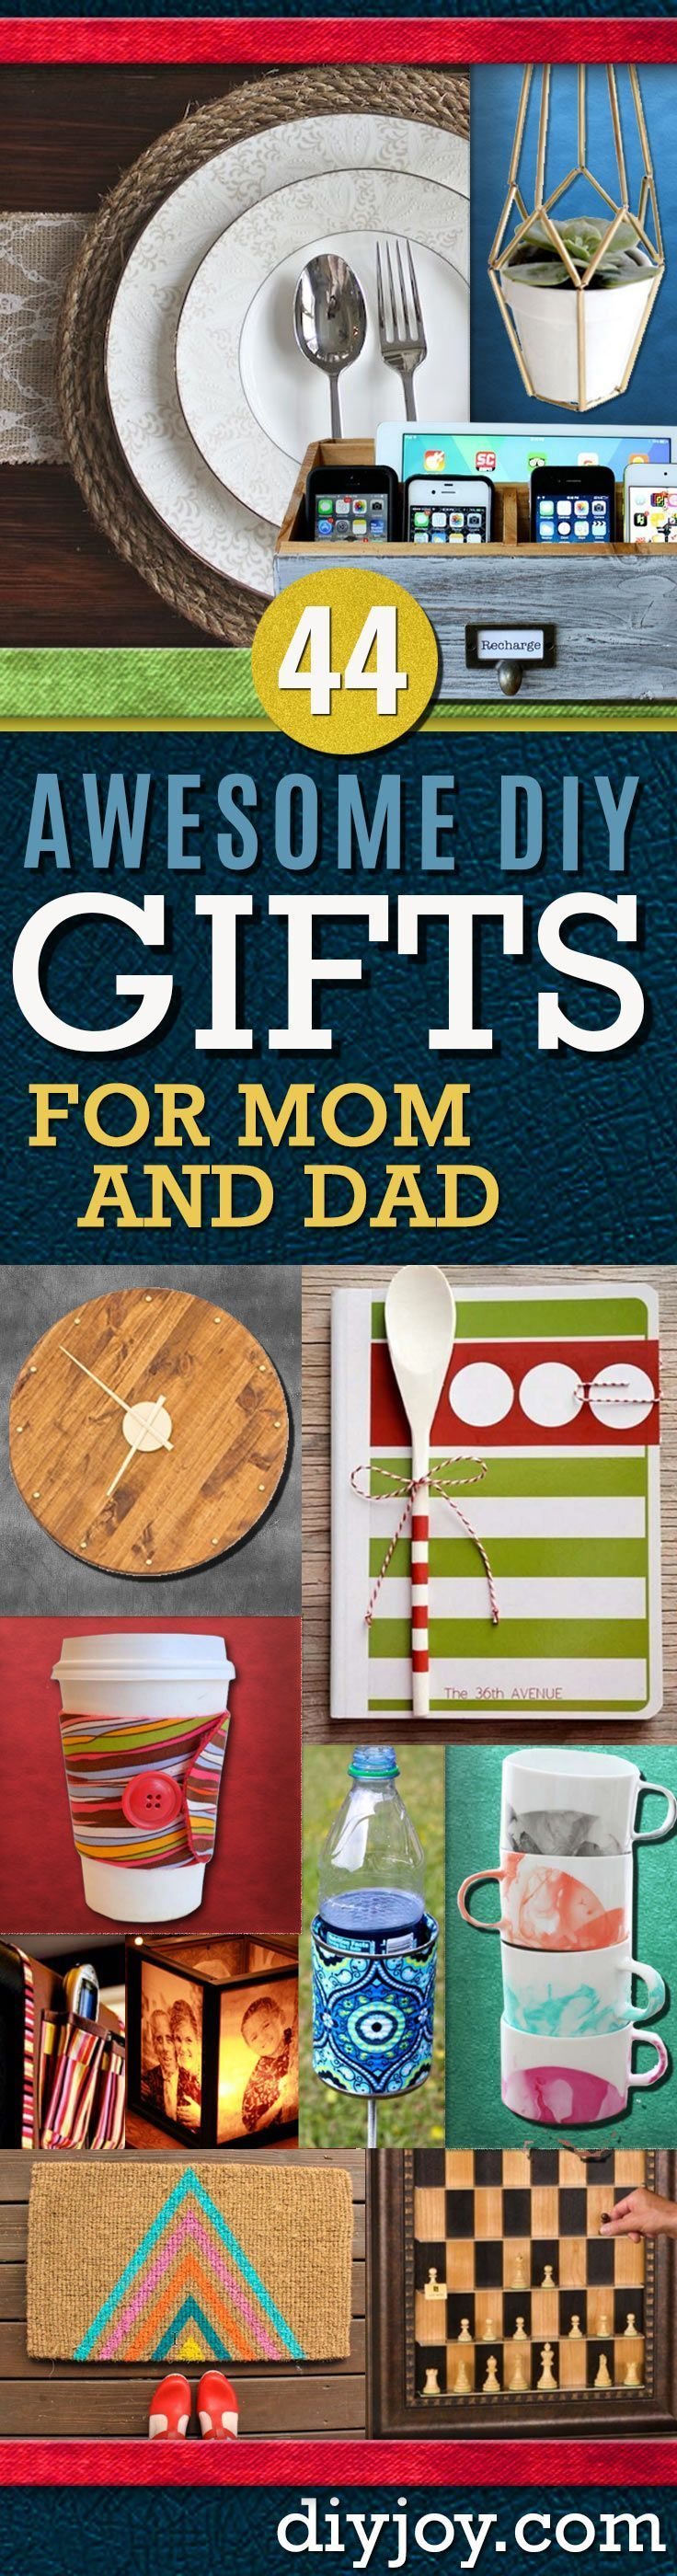 Awesome DIY Gift Ideas Mom and Dad Will Love Diy gifts